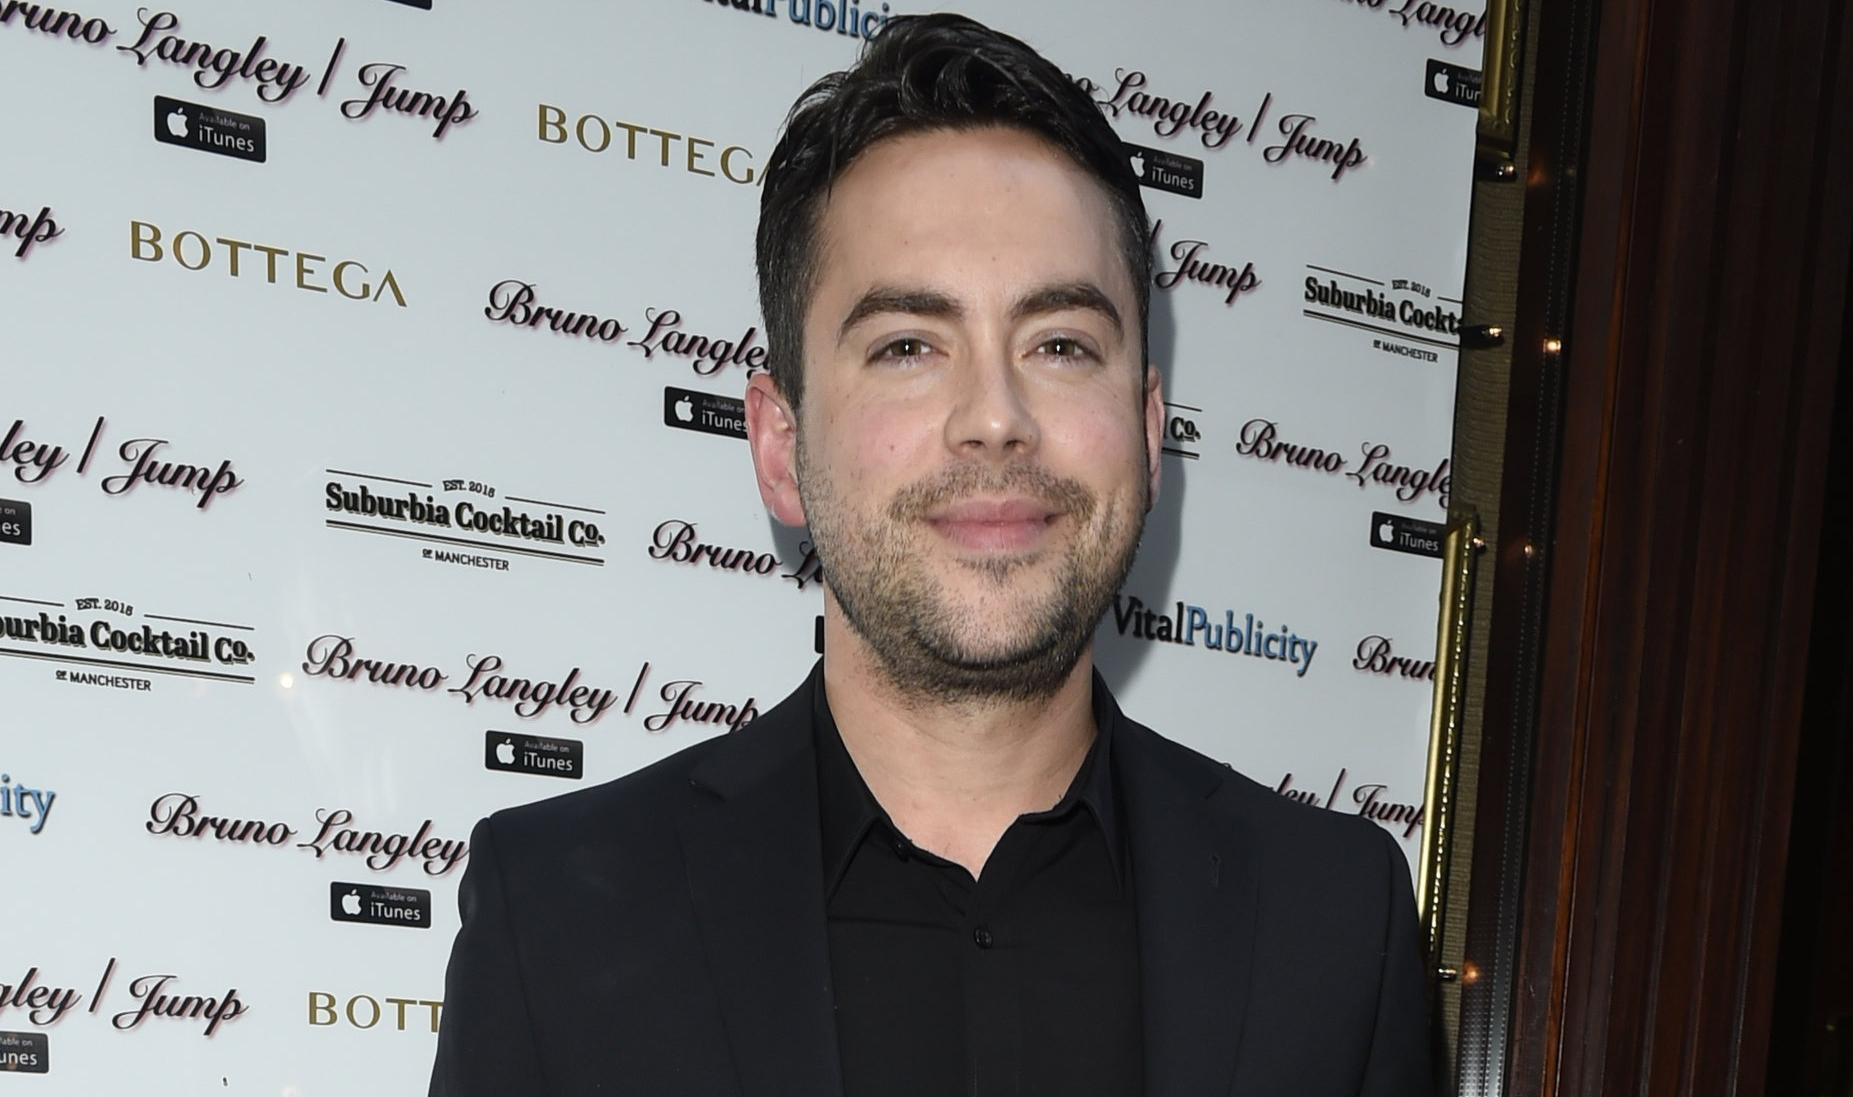 Corrie stars publicly give their support to shamed co-star Bruno Langley